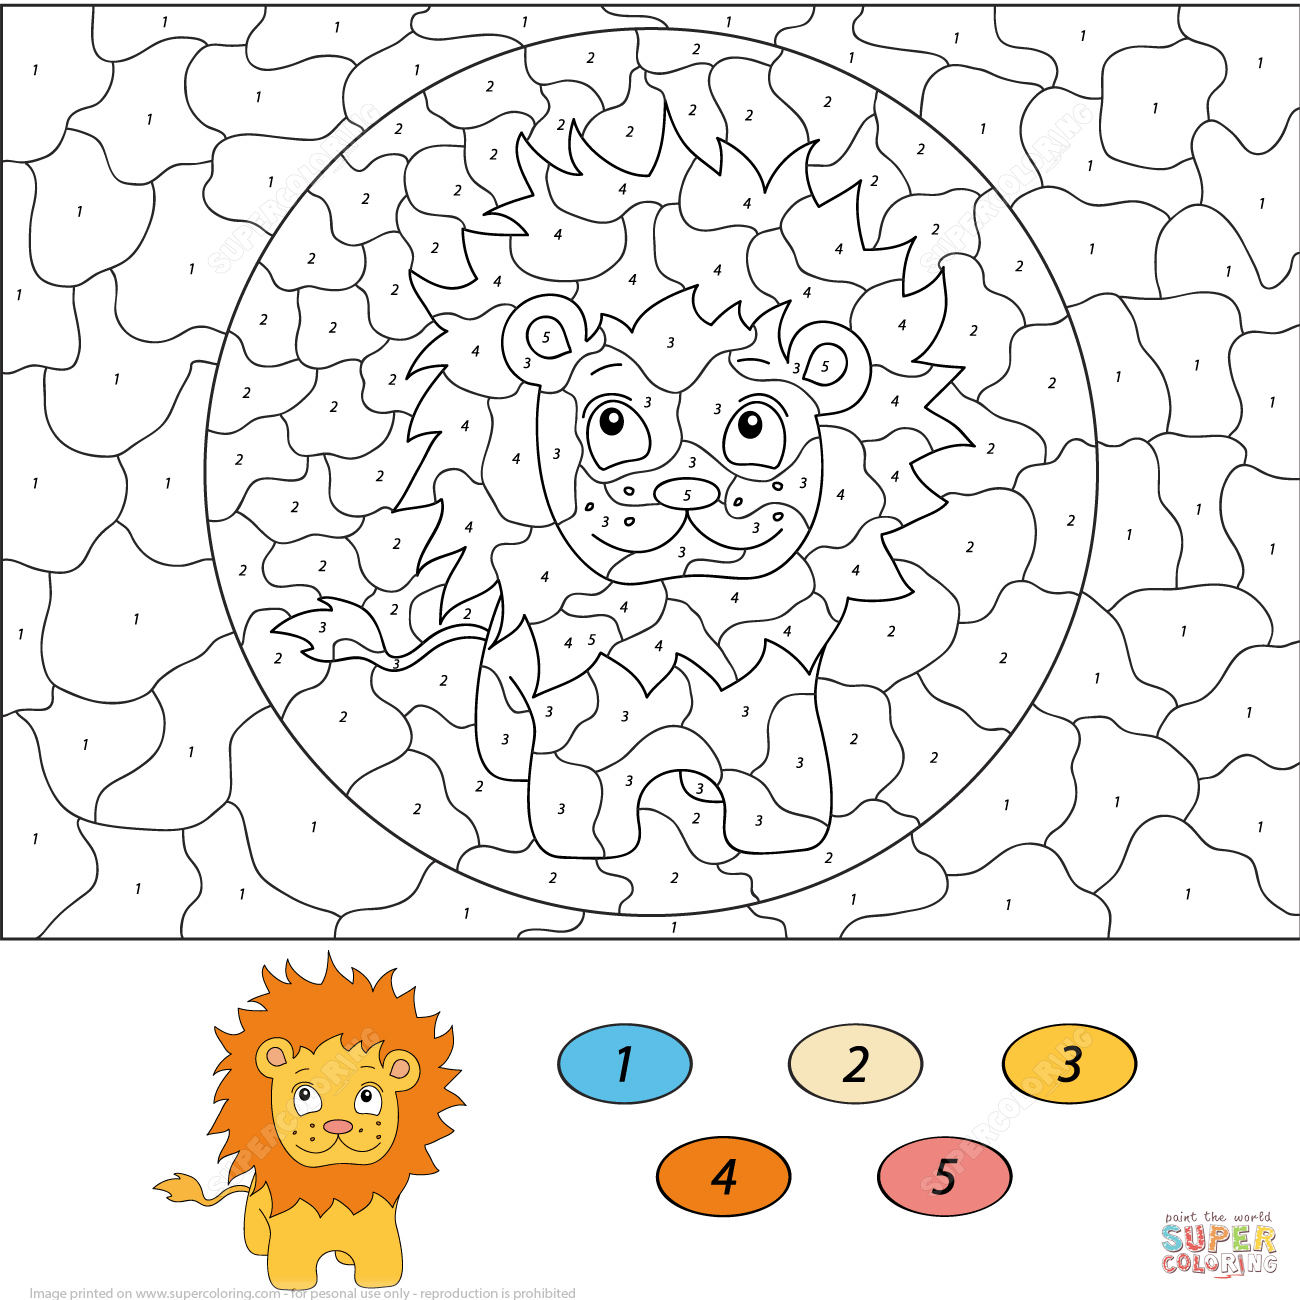 Cartoon Lion Color By Number Coloring Page Png 1300 1300 Cartoon Lion Coloring Pages Cartoon